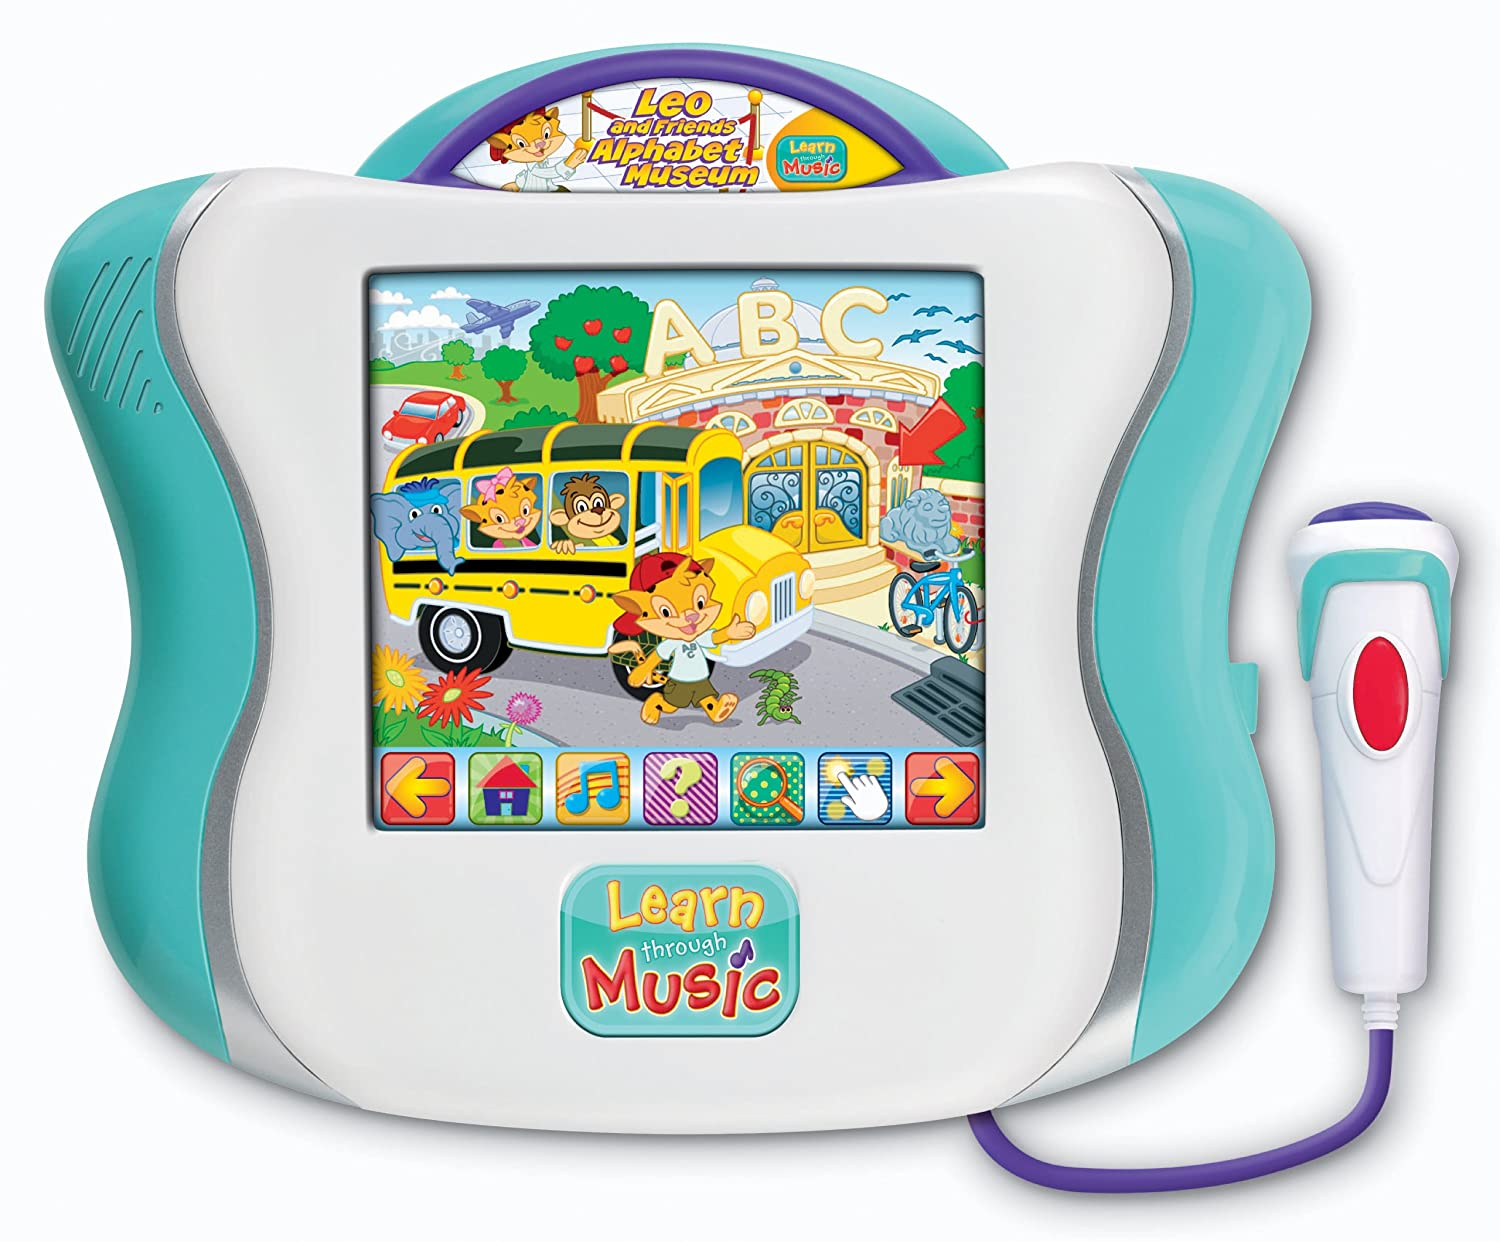 Amazon.com: Fisher-Price Learn Through Music TouchPad: Toys \u0026 Games